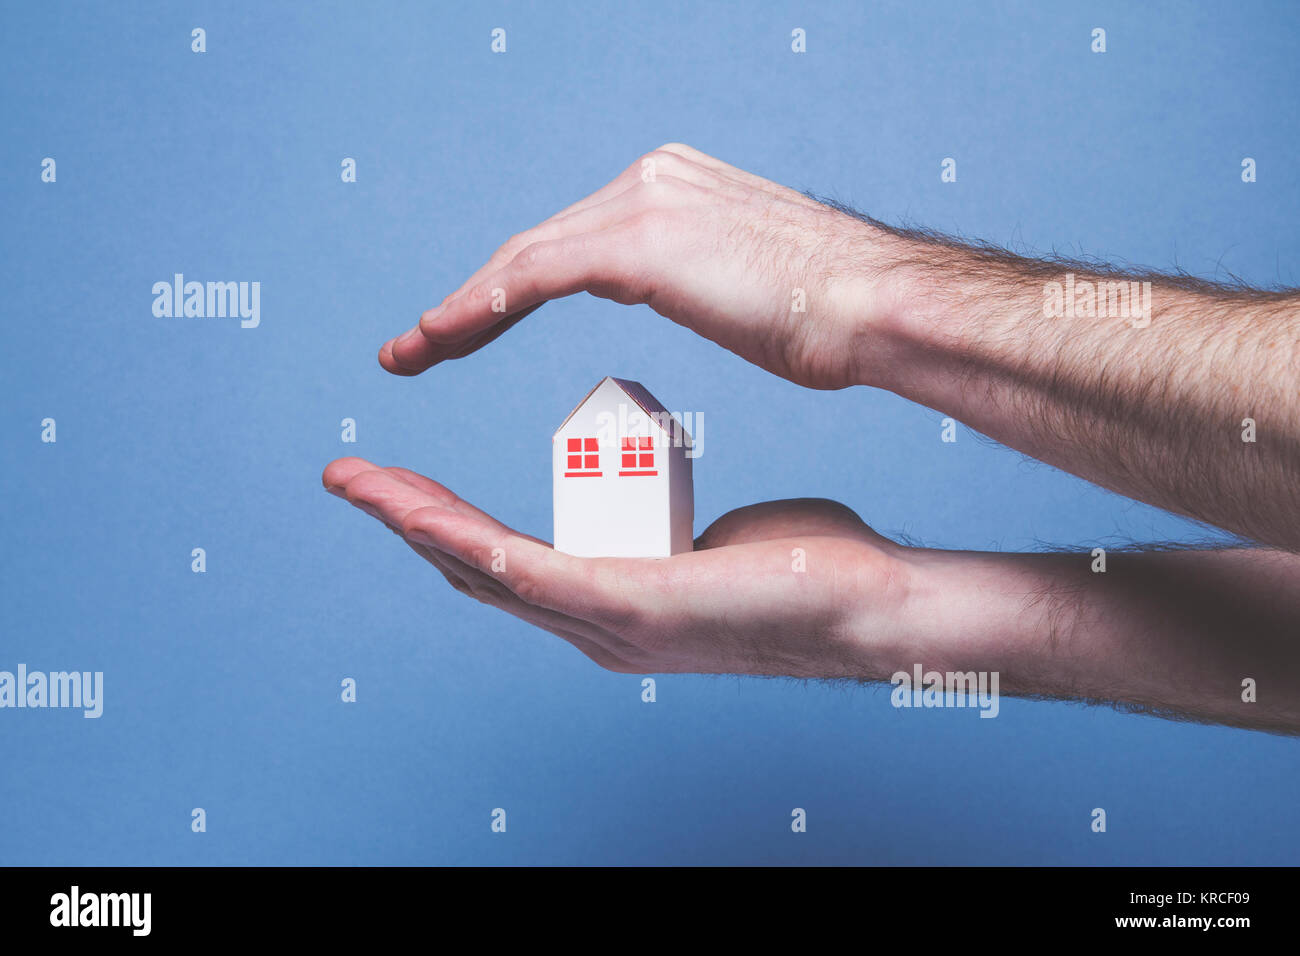 Hands covering a toy house. Home protection concept Stock Photo